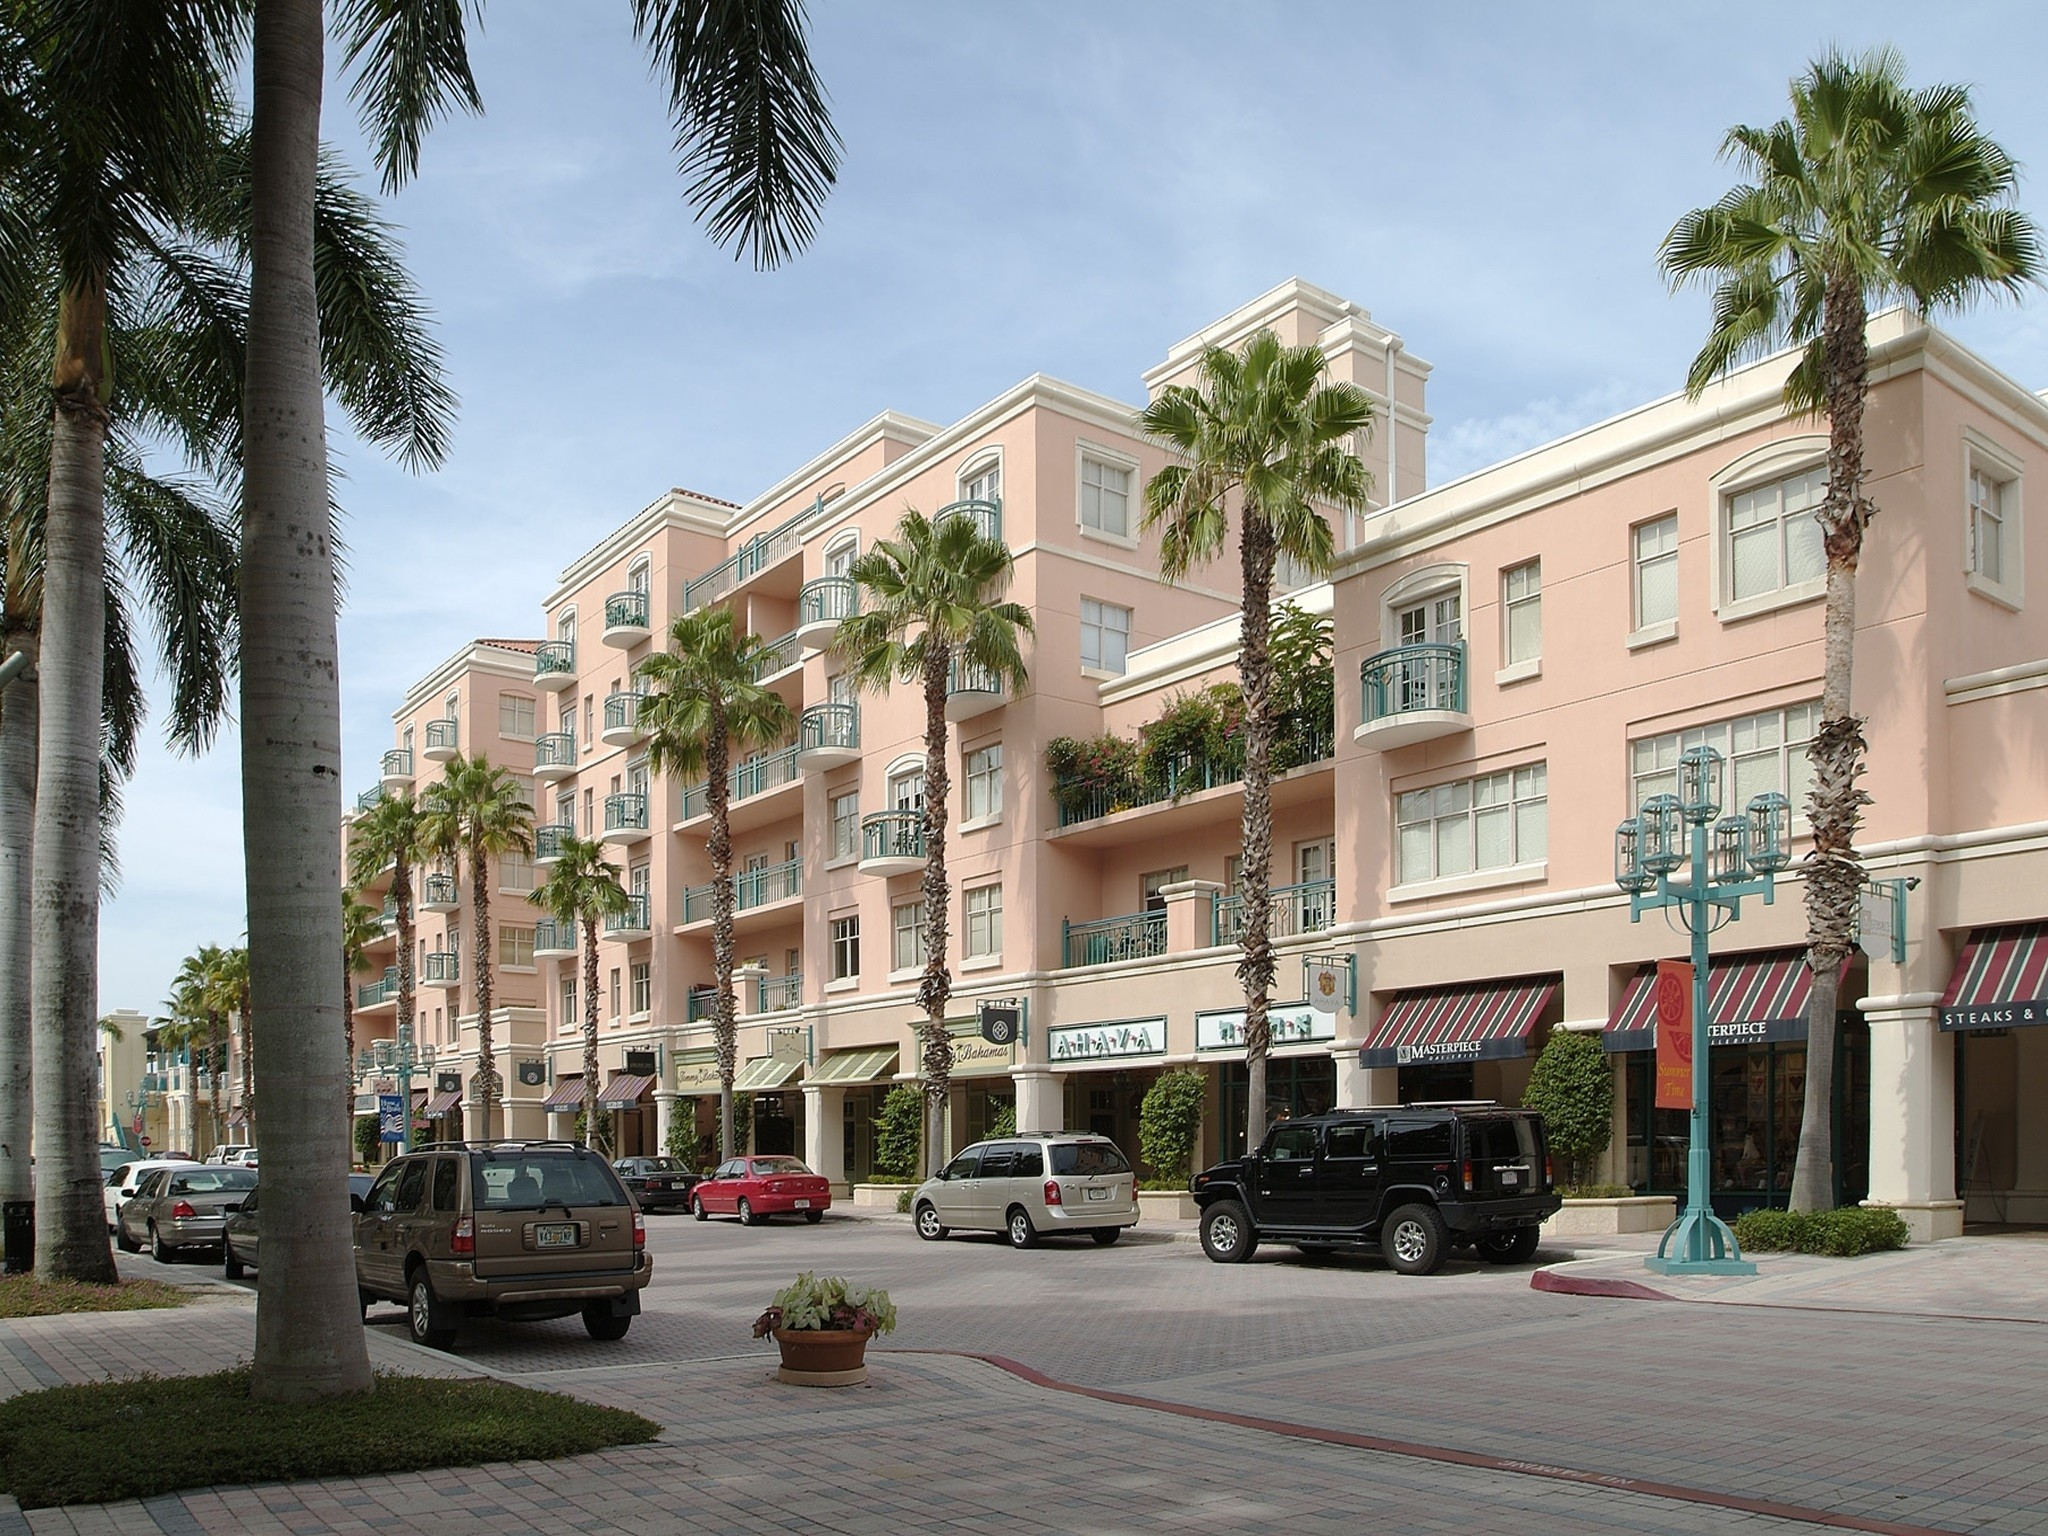 Colleges in boca raton area - Mizner Park Apartments